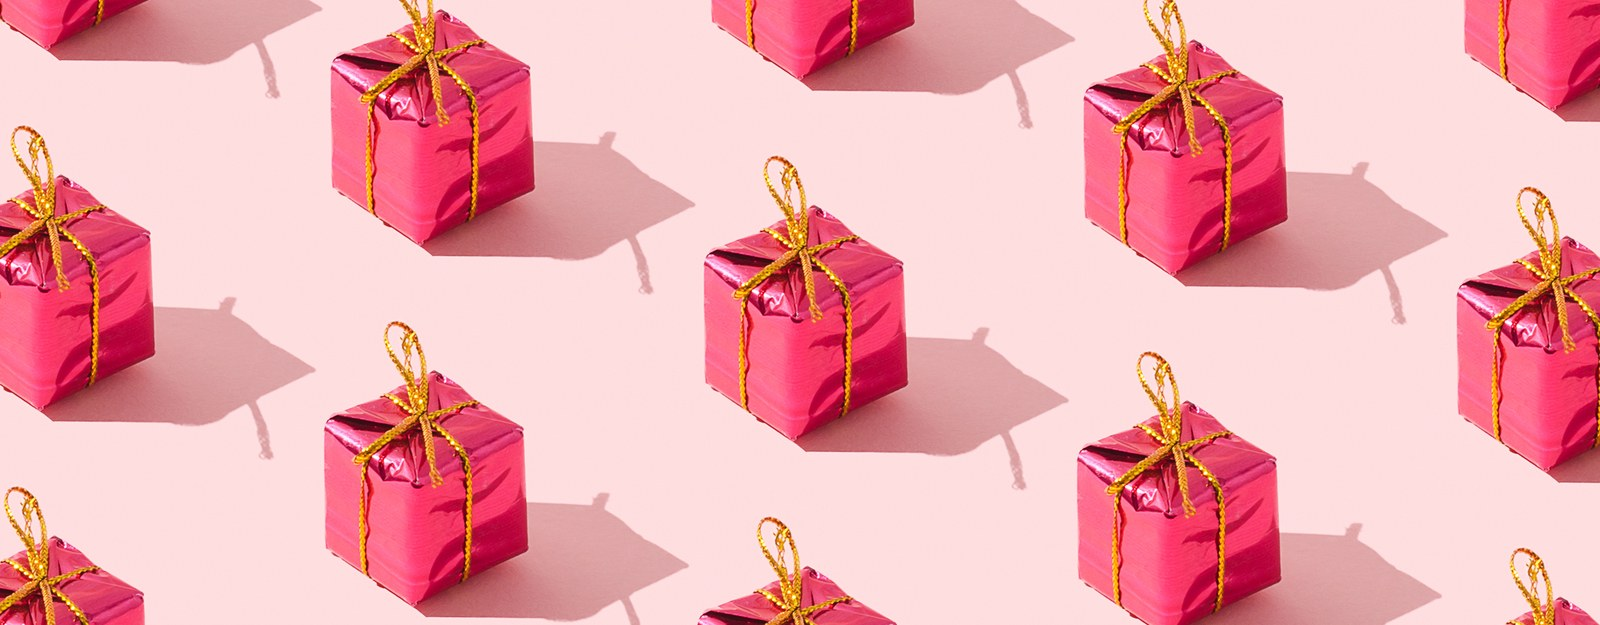 10 Bridal Party Gifts To Buy For Your Bride-To-Be Friend